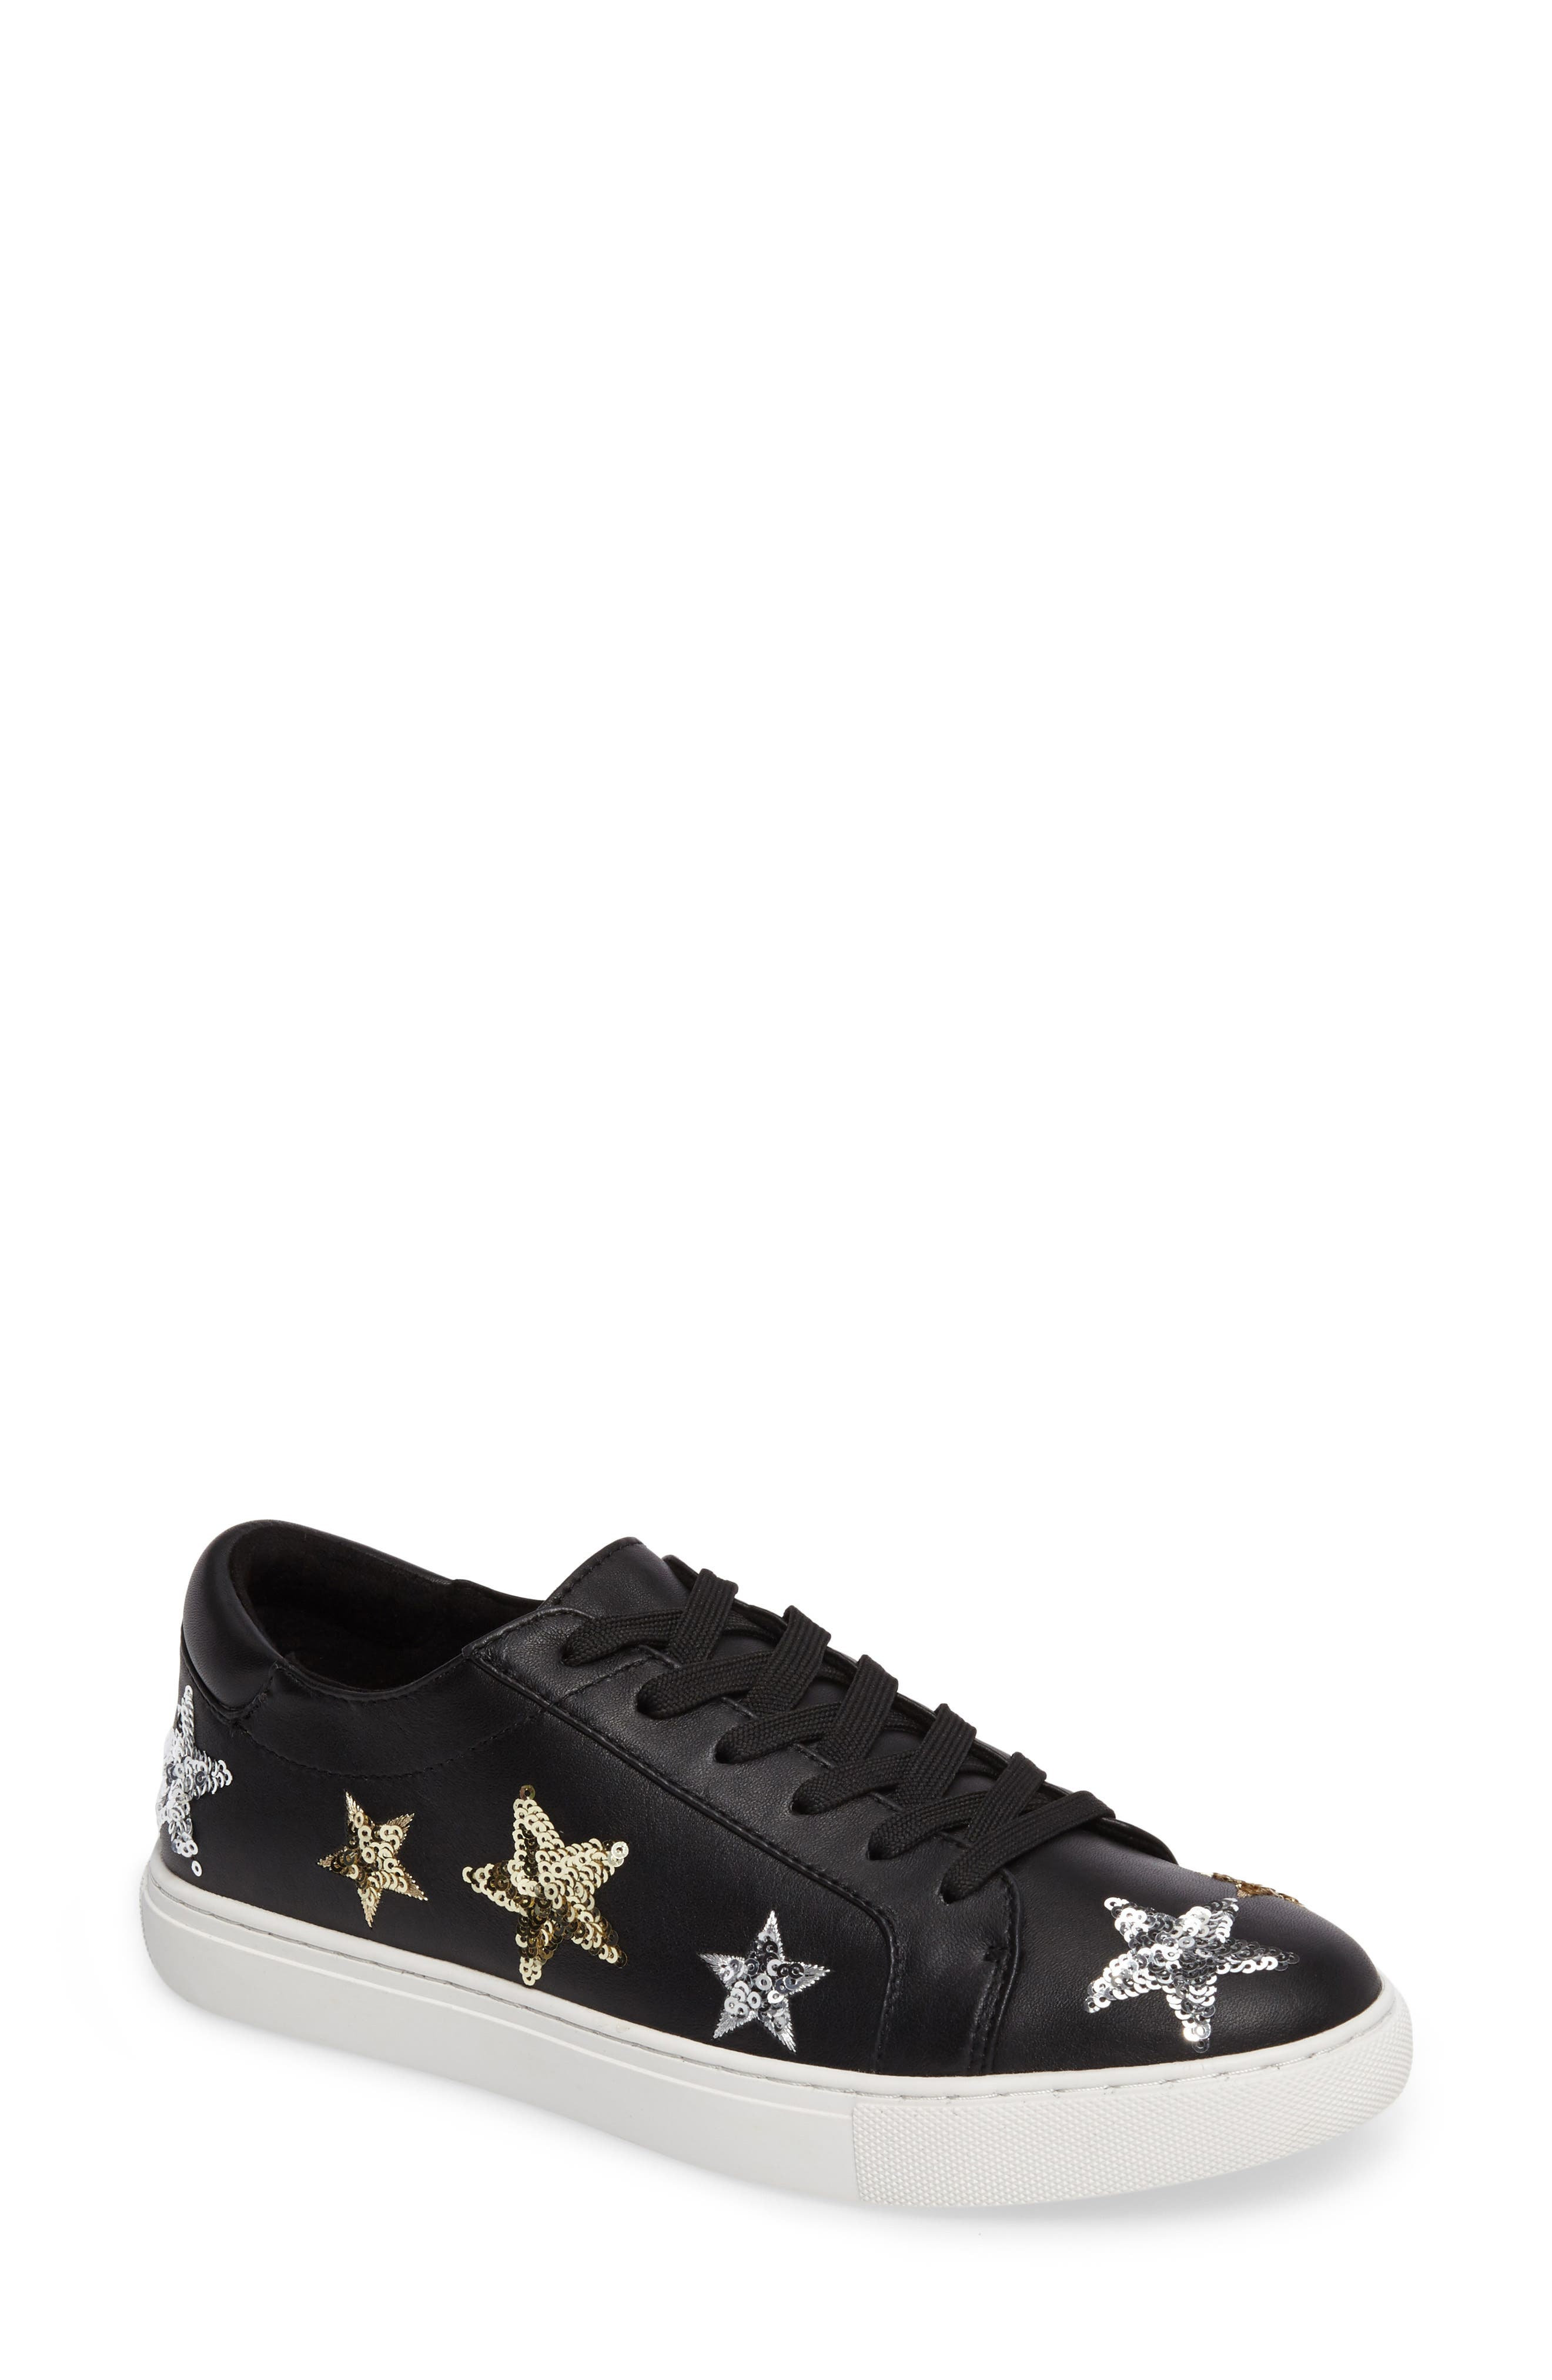 Alternate Image 1 Selected - Kenneth Cole New York Kam Star Sneaker (Women)